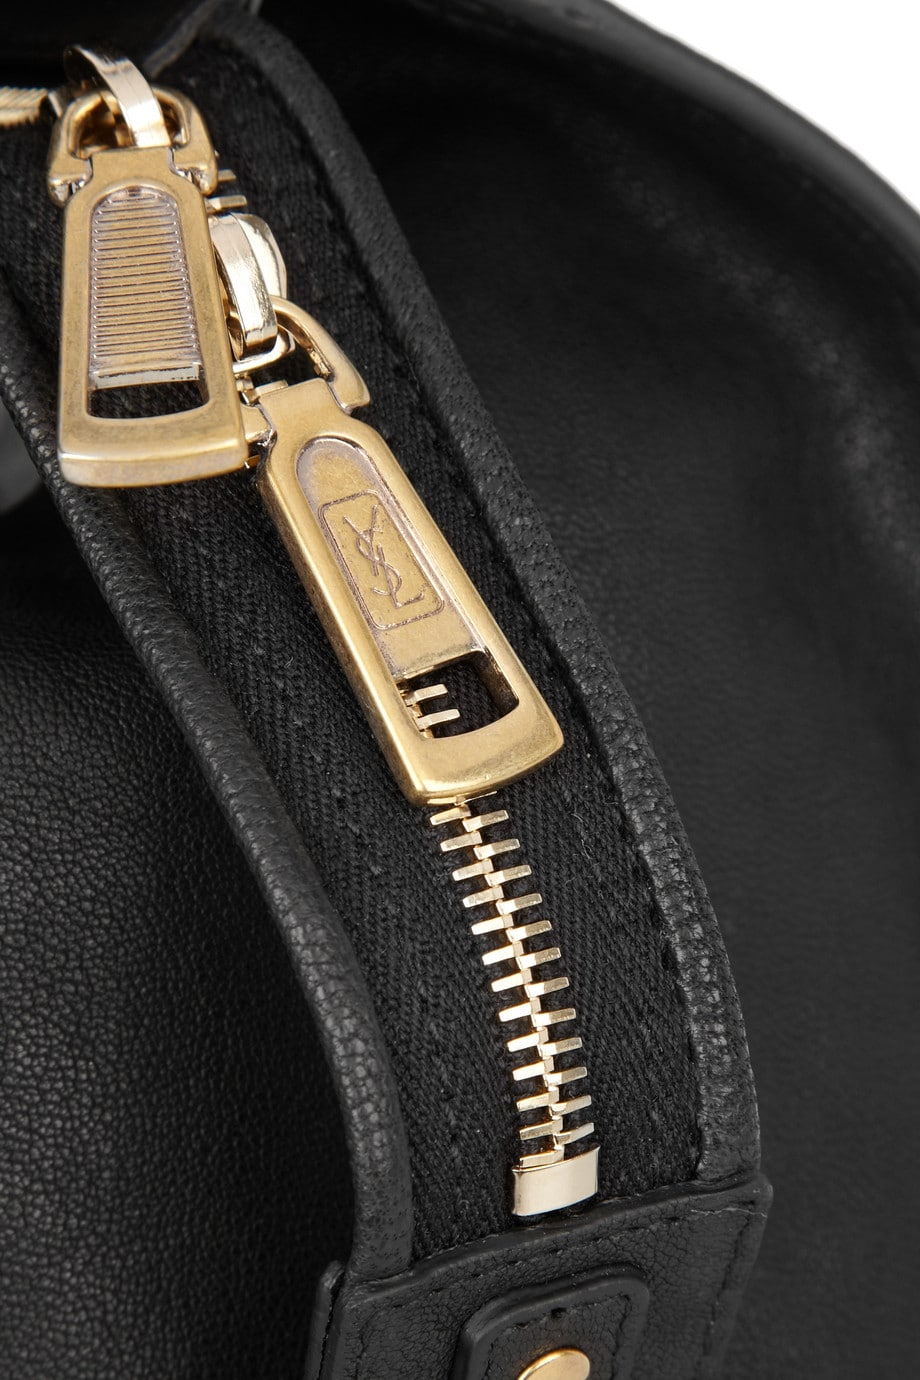 Saint Laurent Cabas Bag Redesigned From The Former Chyc